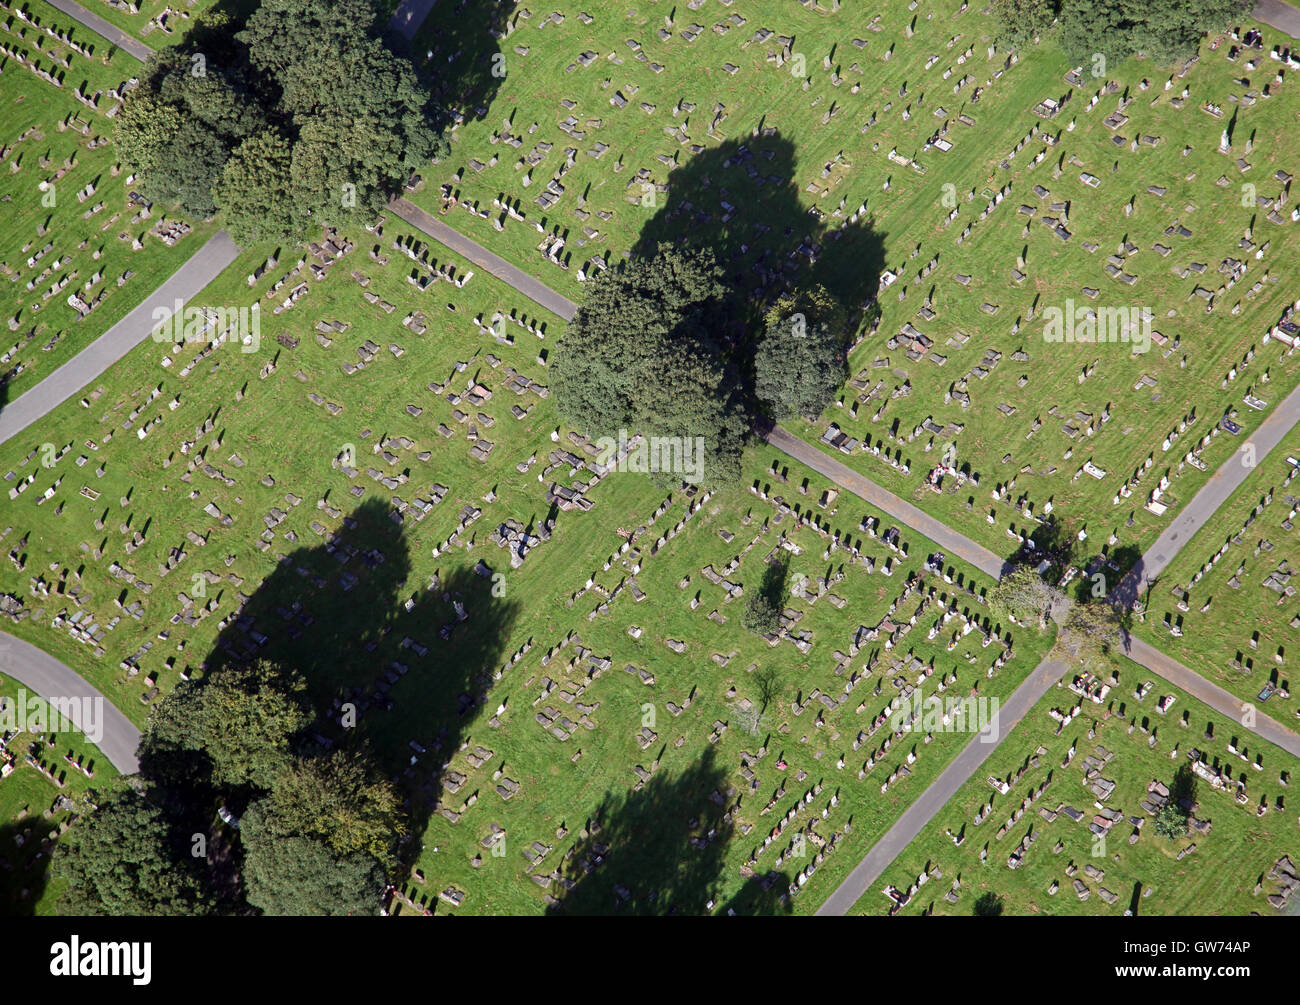 aerial view of a graveyard cemetery in the UK - Stock Image